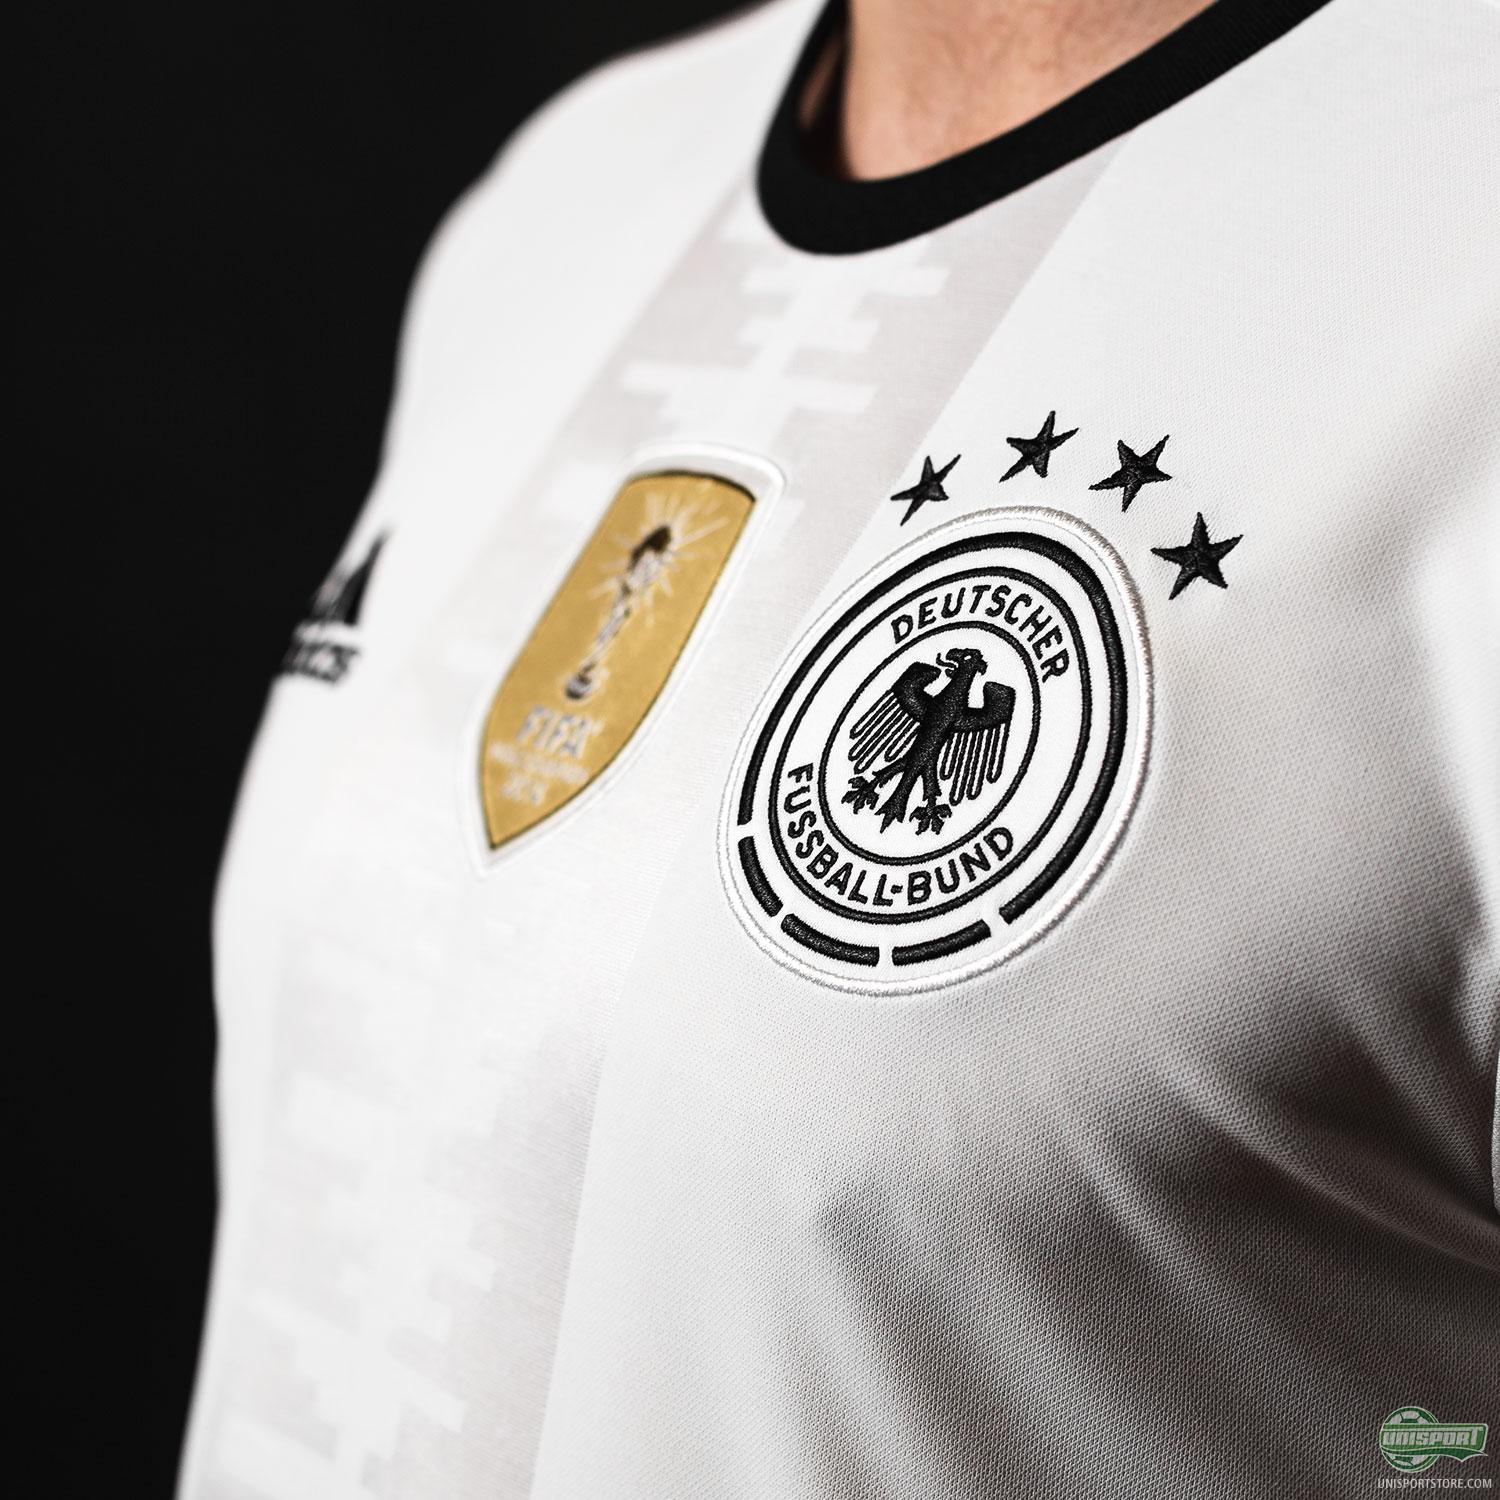 Adidas present the new Euro 2016 home-shirt for the German national team